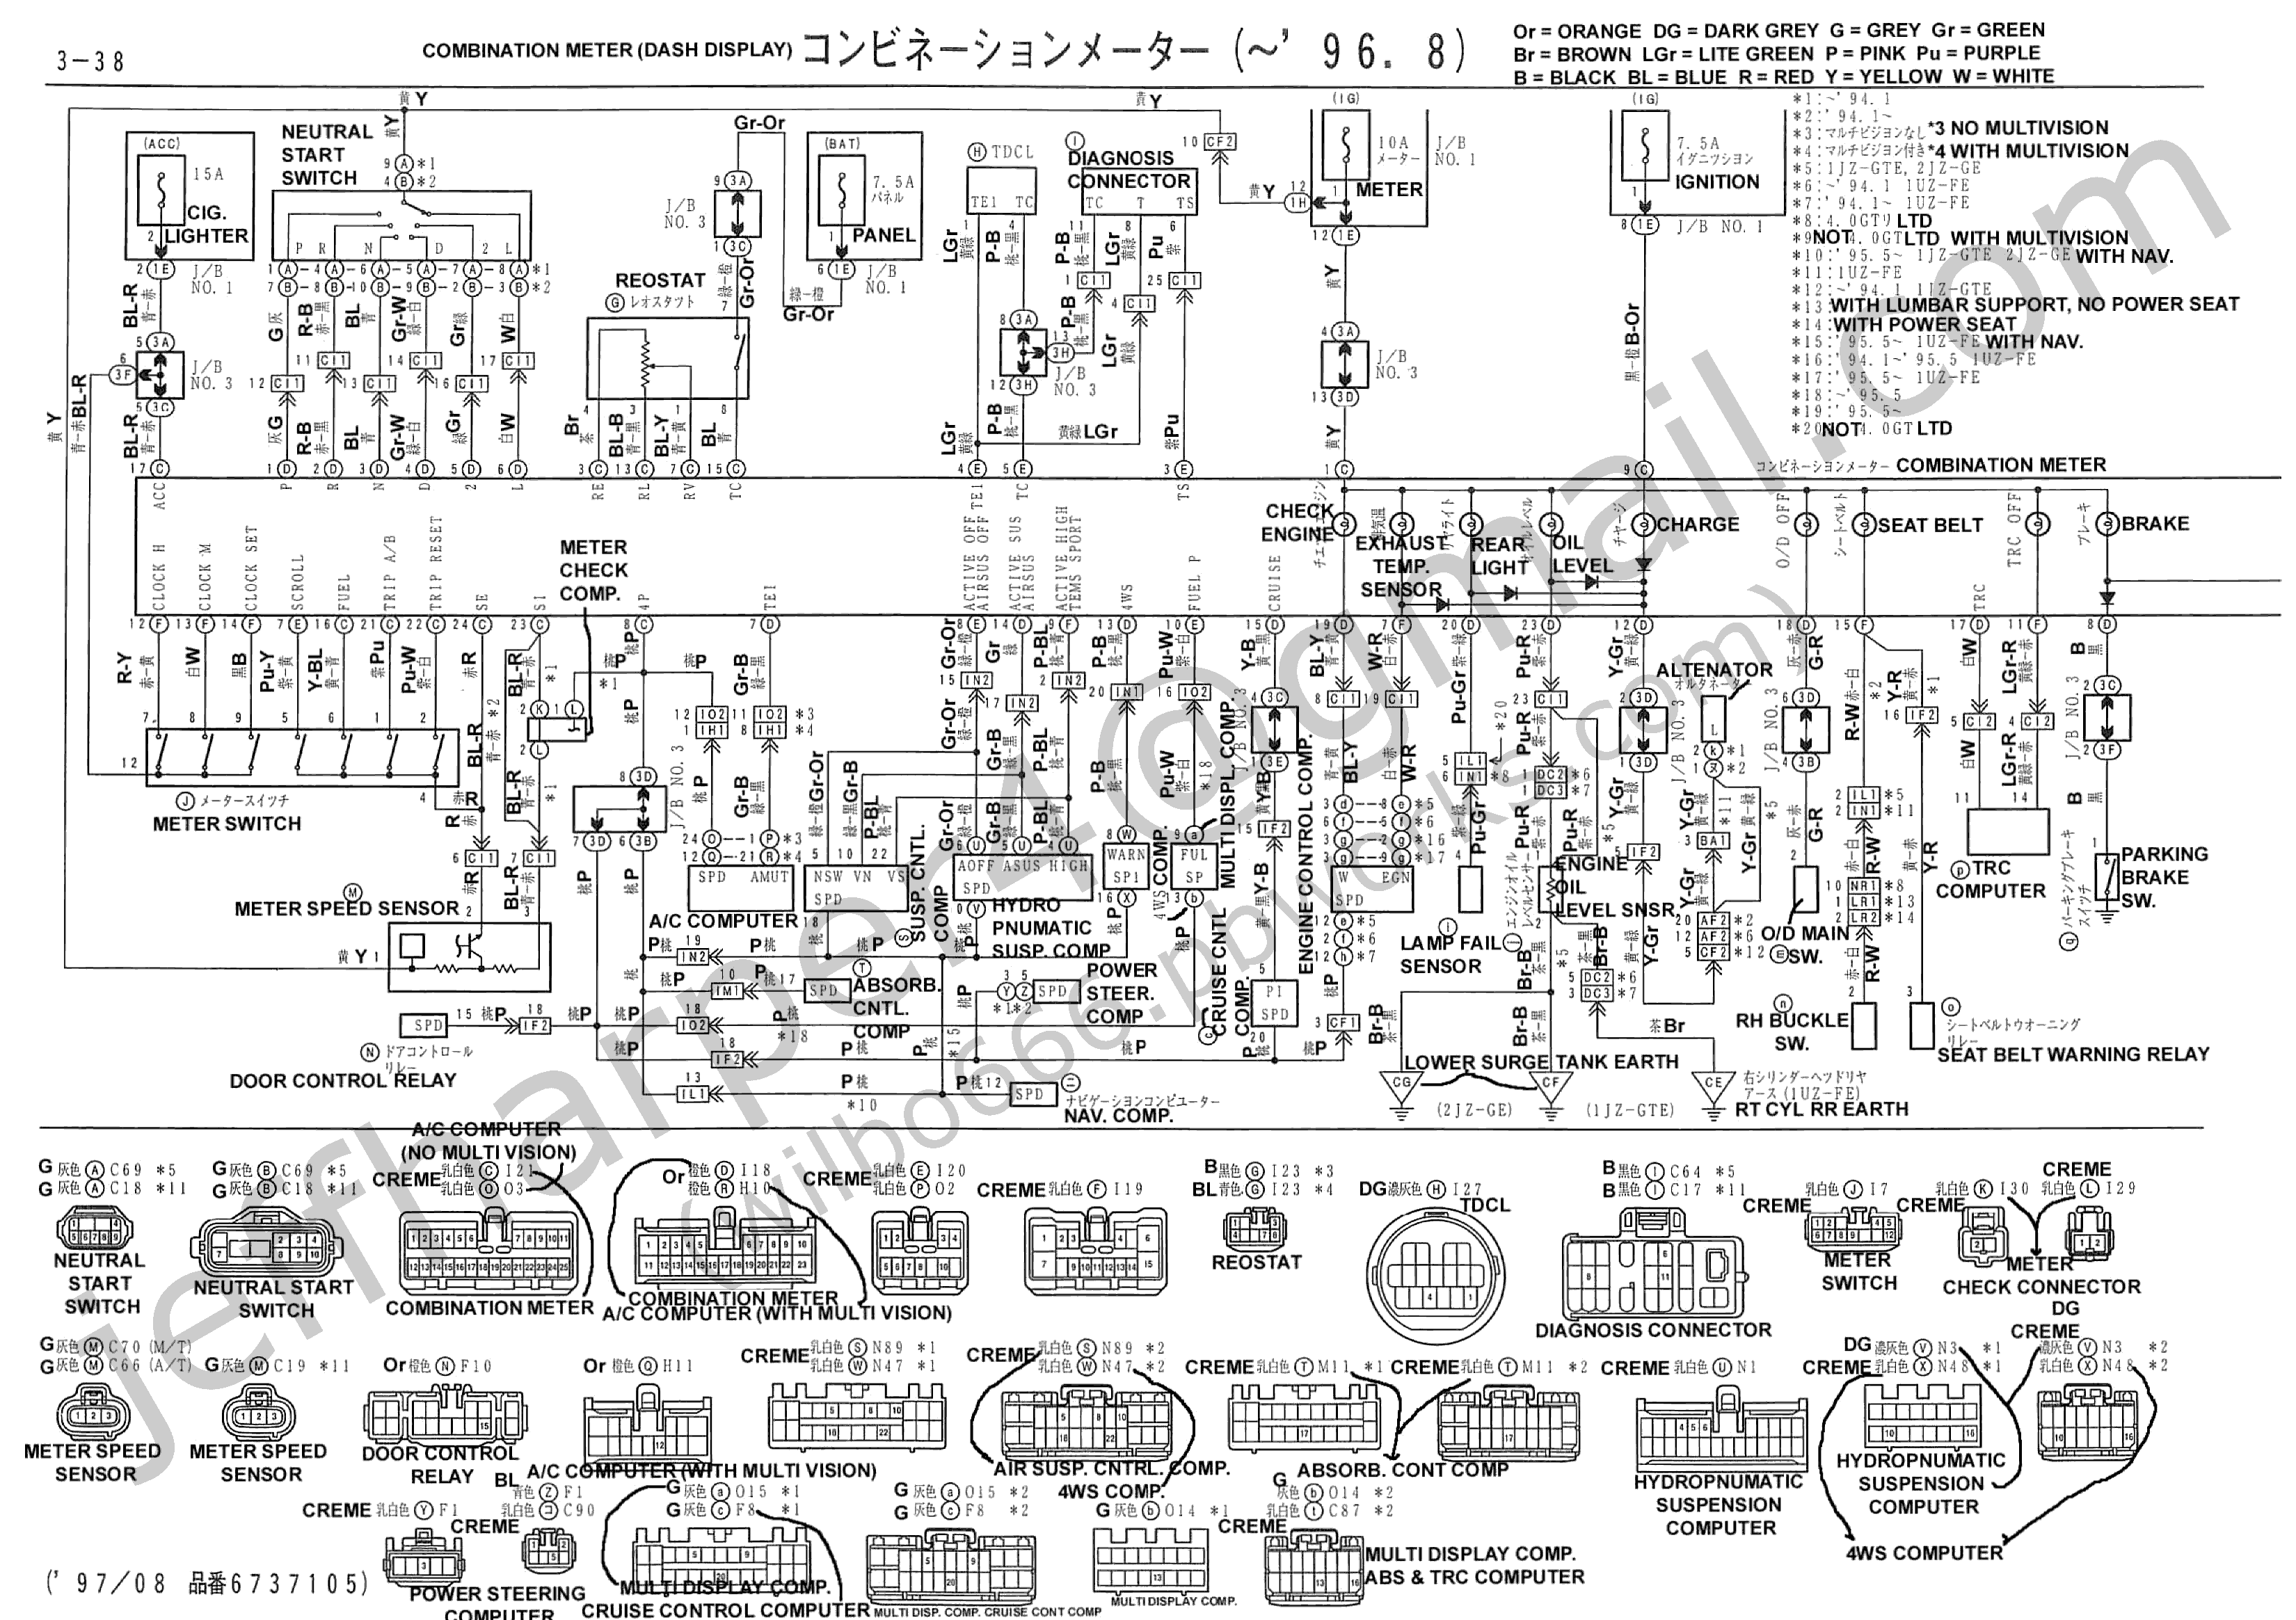 xZZ3x Electrical Wiring Diagram 6737105 3 38?resize\\\\\\\\\\\=665%2C469 1999 pontiac montana wiring diagram ke 2003 pontiac bonneville 2004 pontiac bonneville radio wiring diagram at nearapp.co